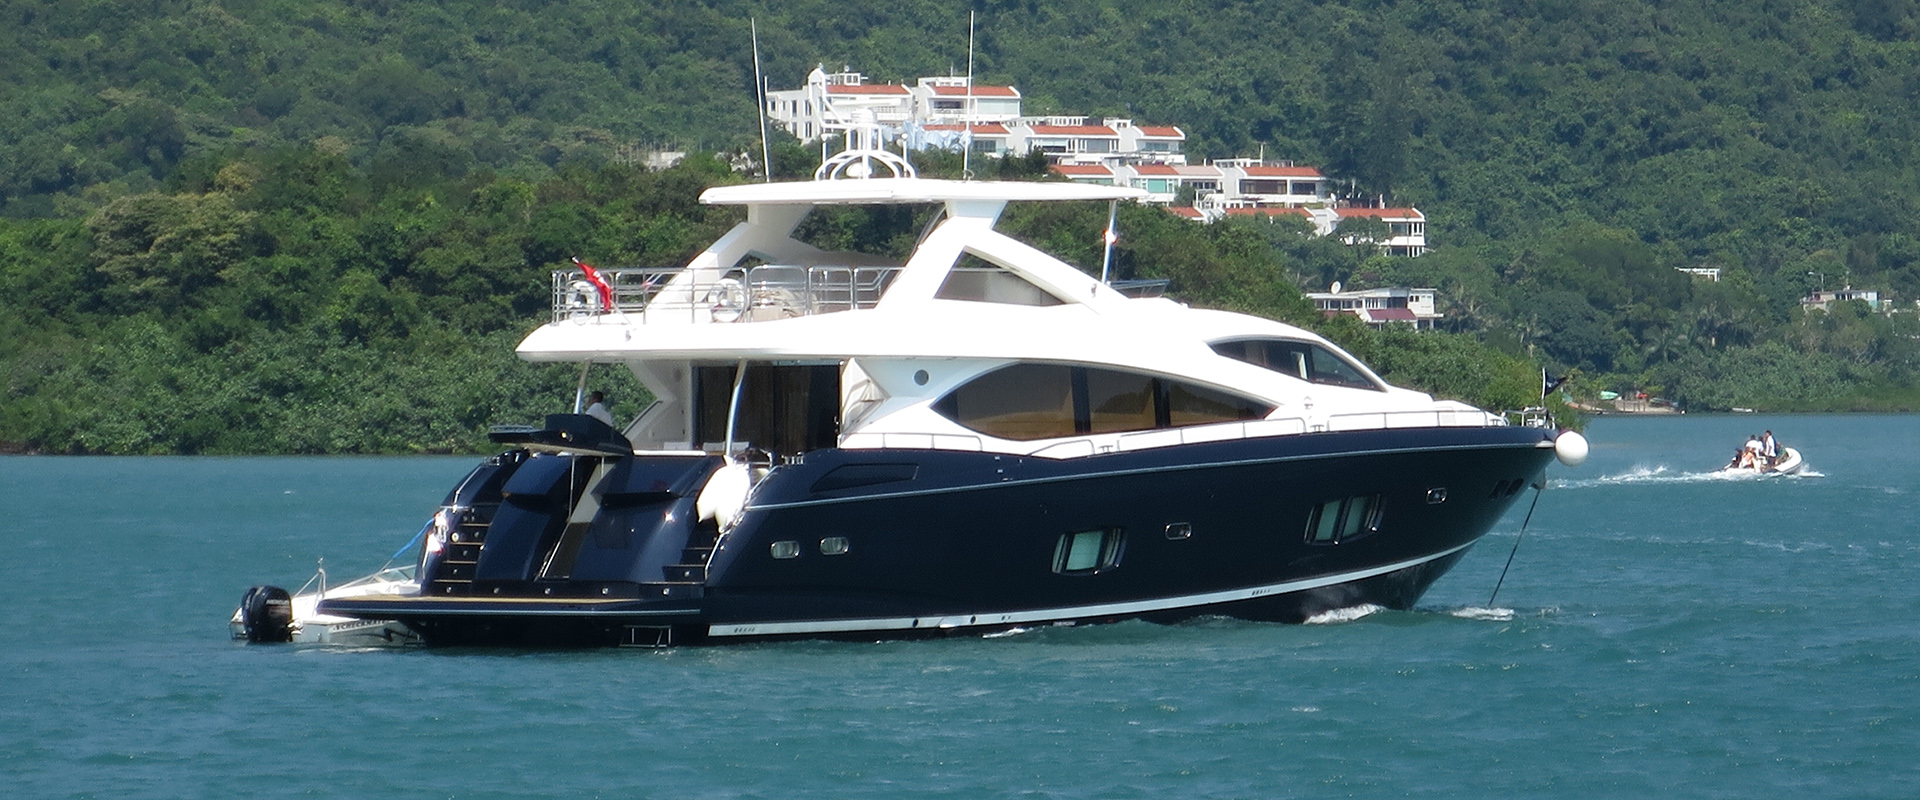 Seanergy Yacht Brokers Hong Kong